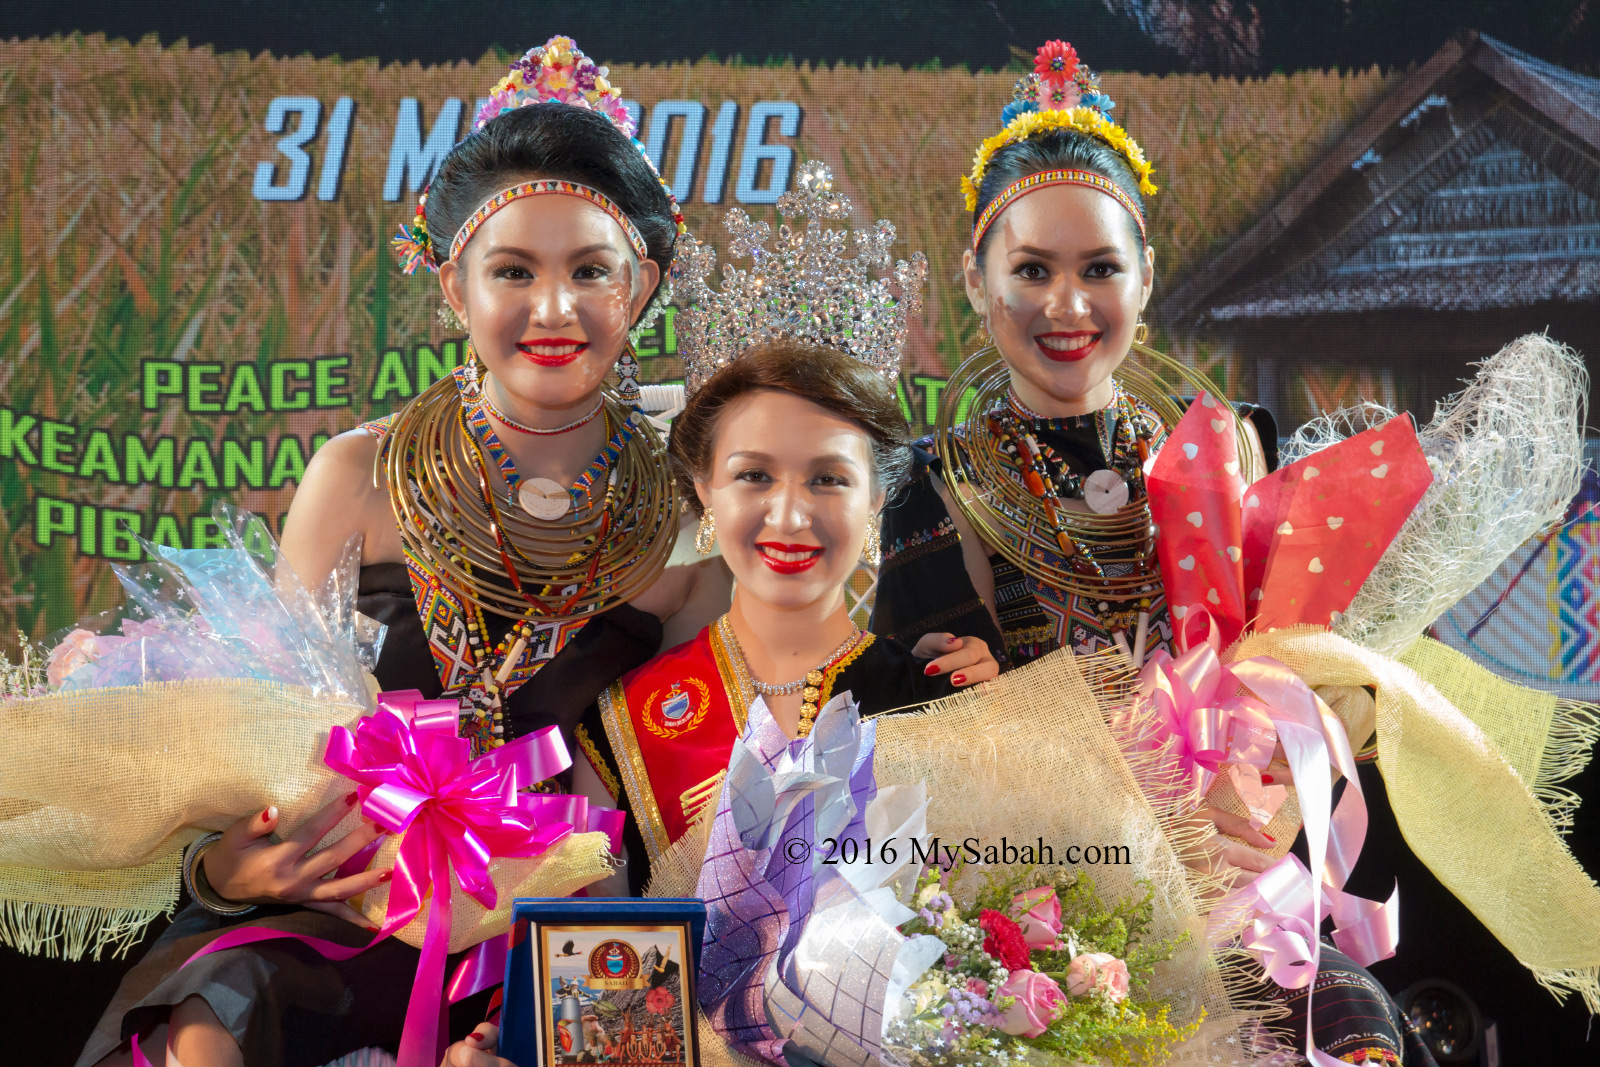 From left to right: 1st Runner-up: Claryssa Henry (Kudat), The Queen: Sherry Ann Laujang (Penampang), 2nd-Runner-up: Fenny Ester Joslin (Banggi)